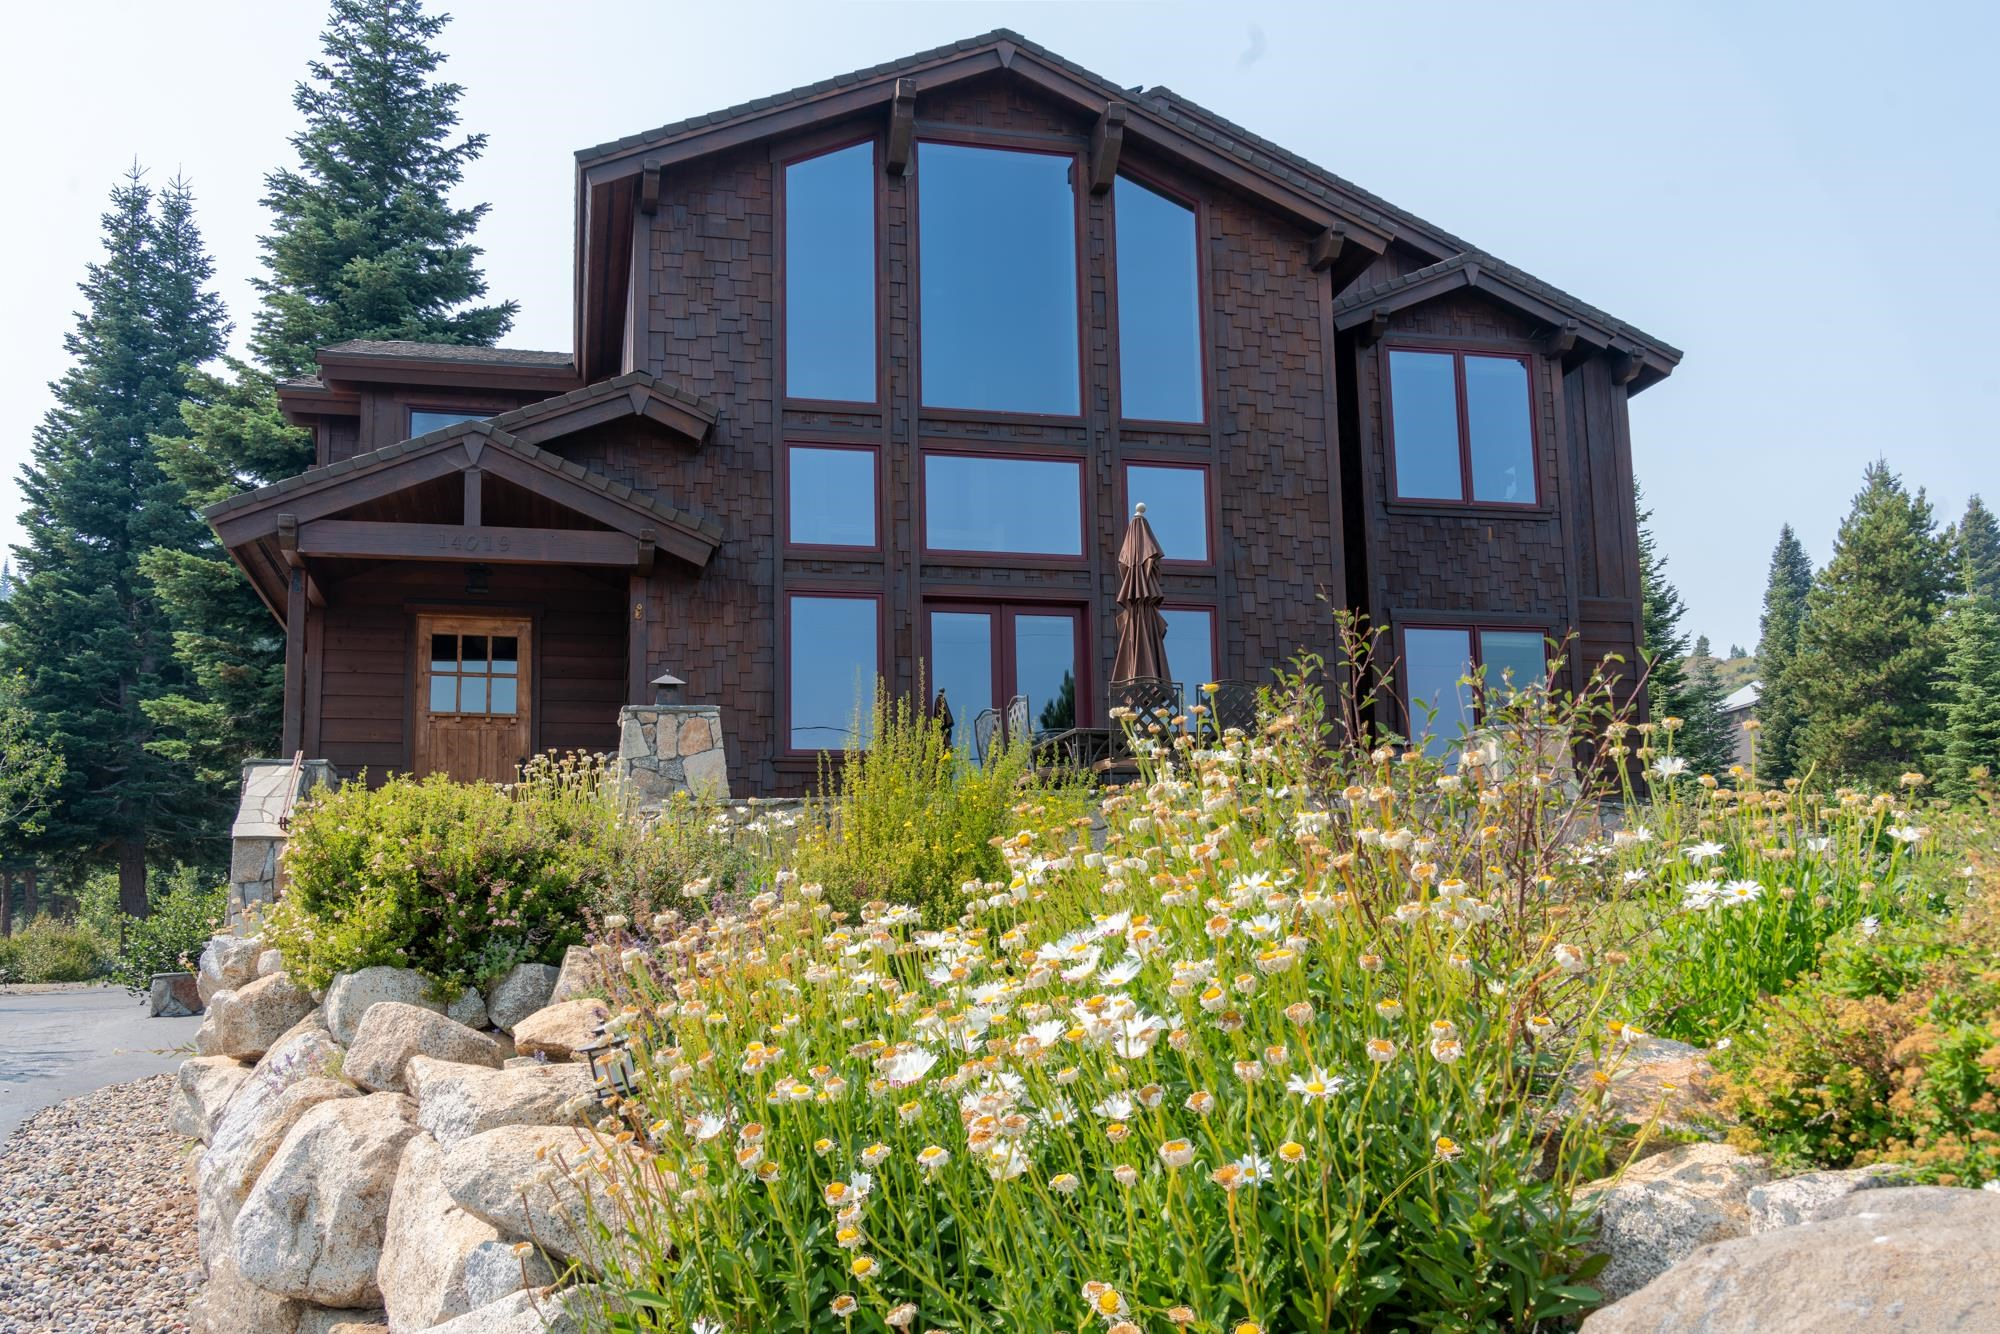 Image for 14019 Skislope Way, Truckee, CA 96161